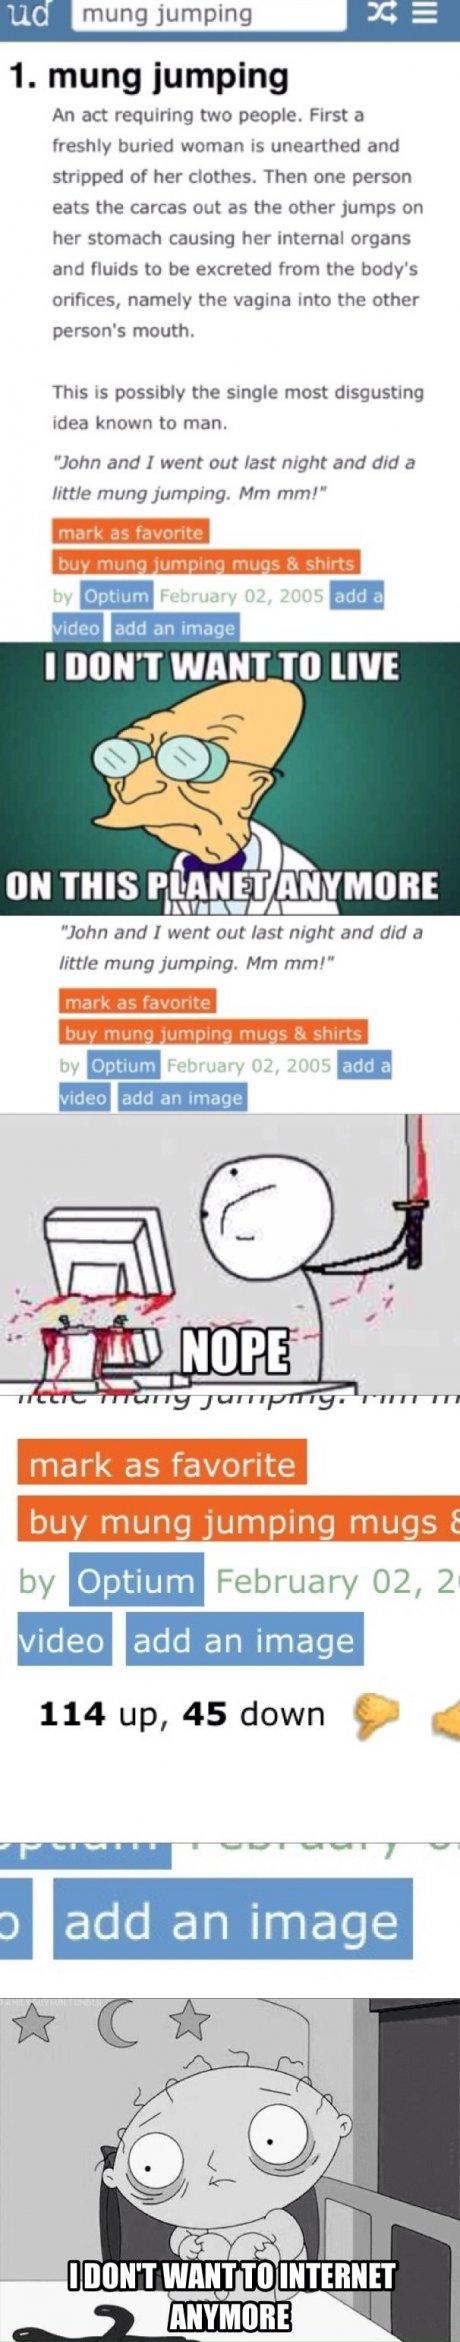 486528 - pic dump (the funny kind)